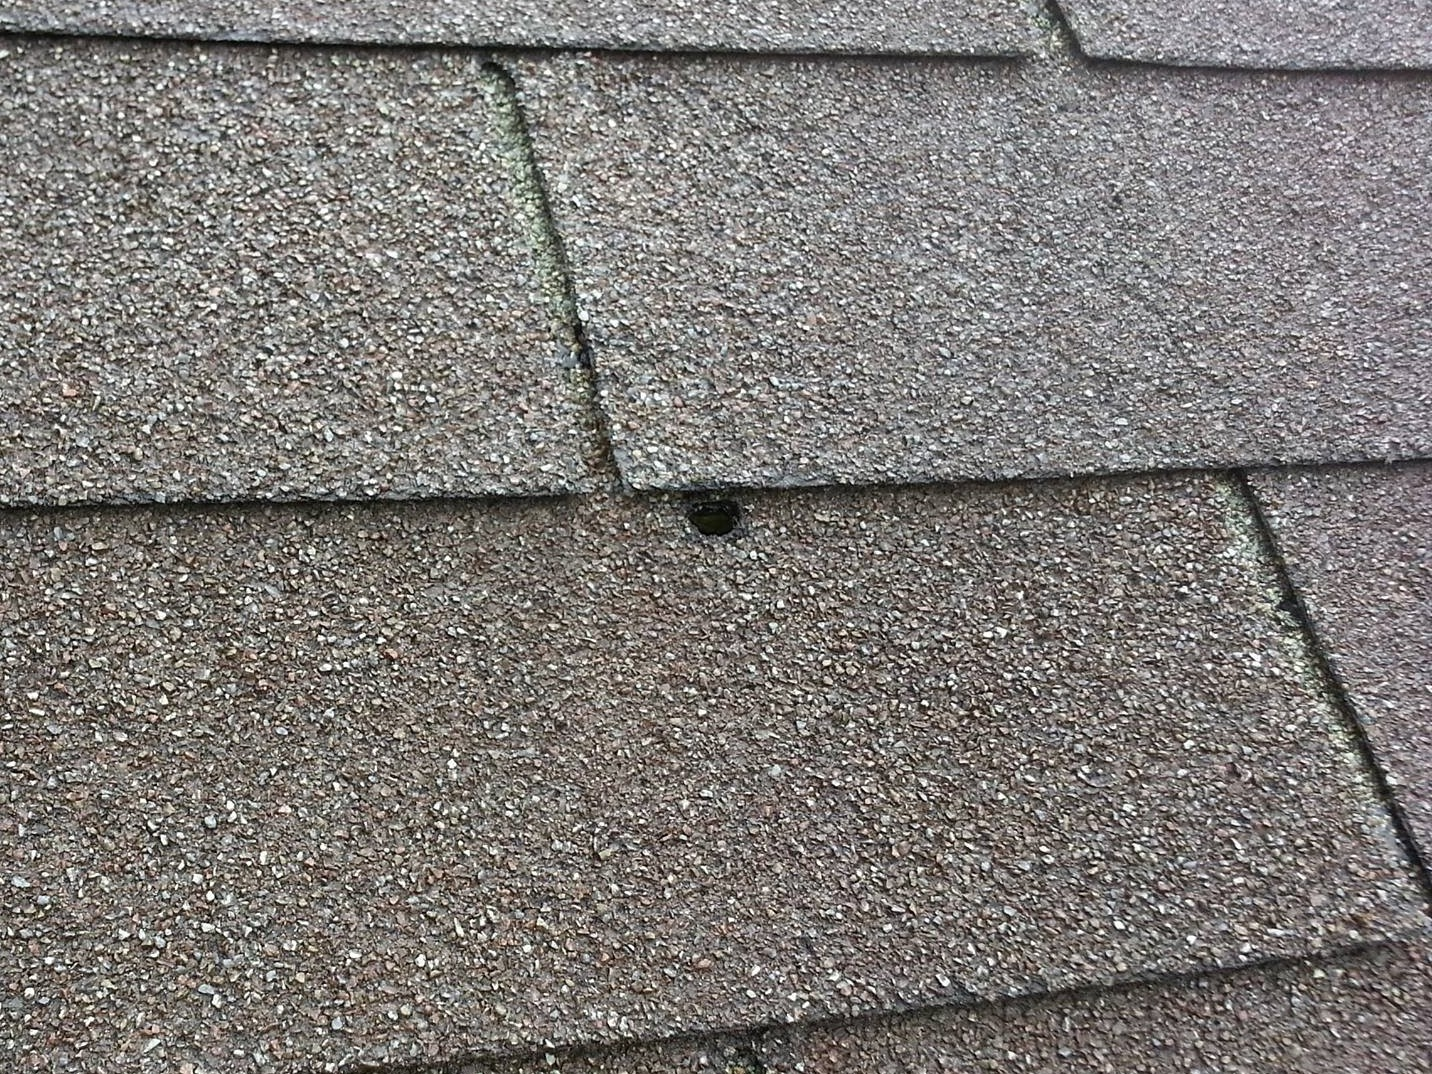 Exposed Nails Can Cause Roof Leaks